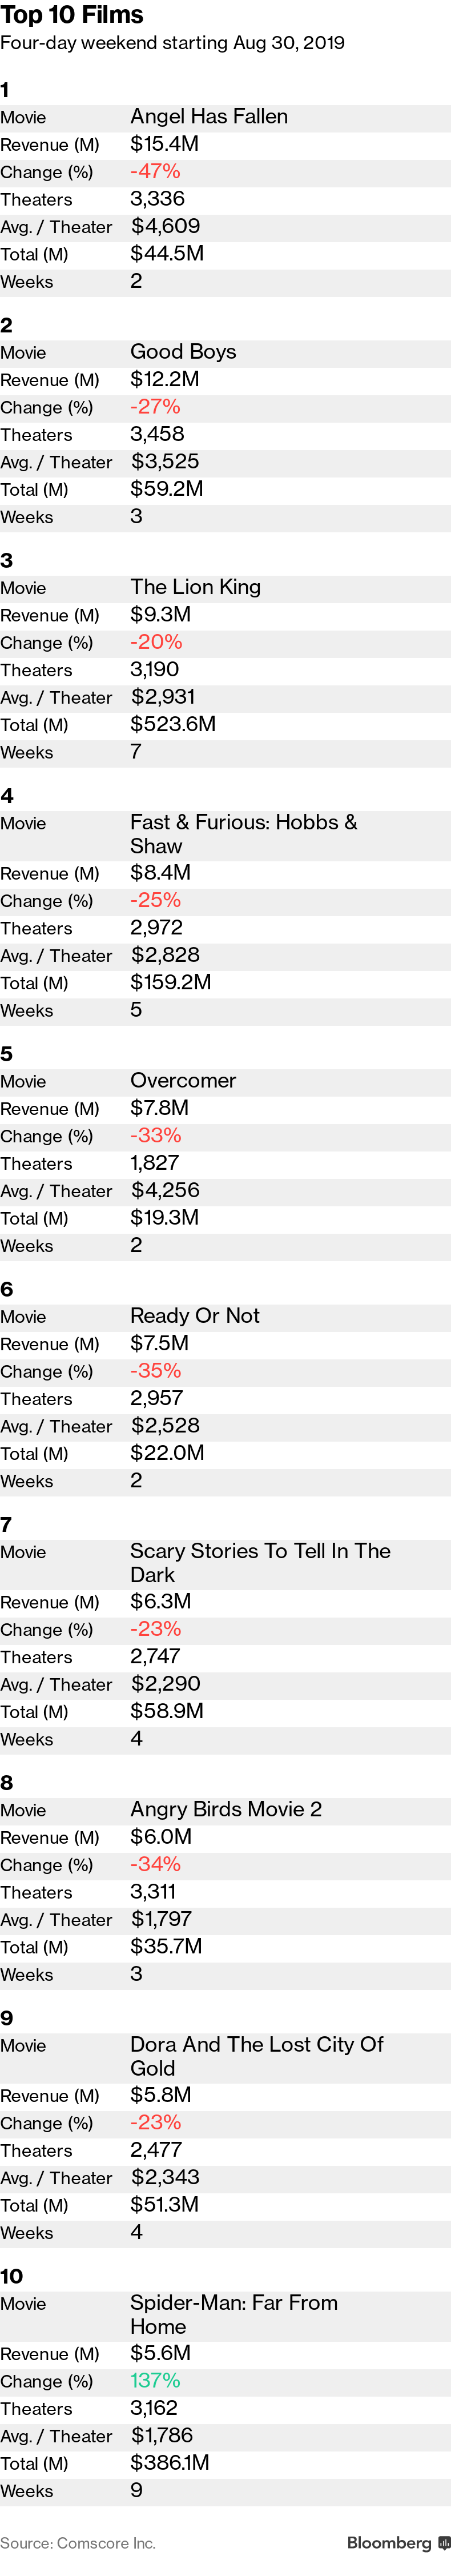 Angel Has Fallen' Tops Labor Day Weekend Box-Office Results